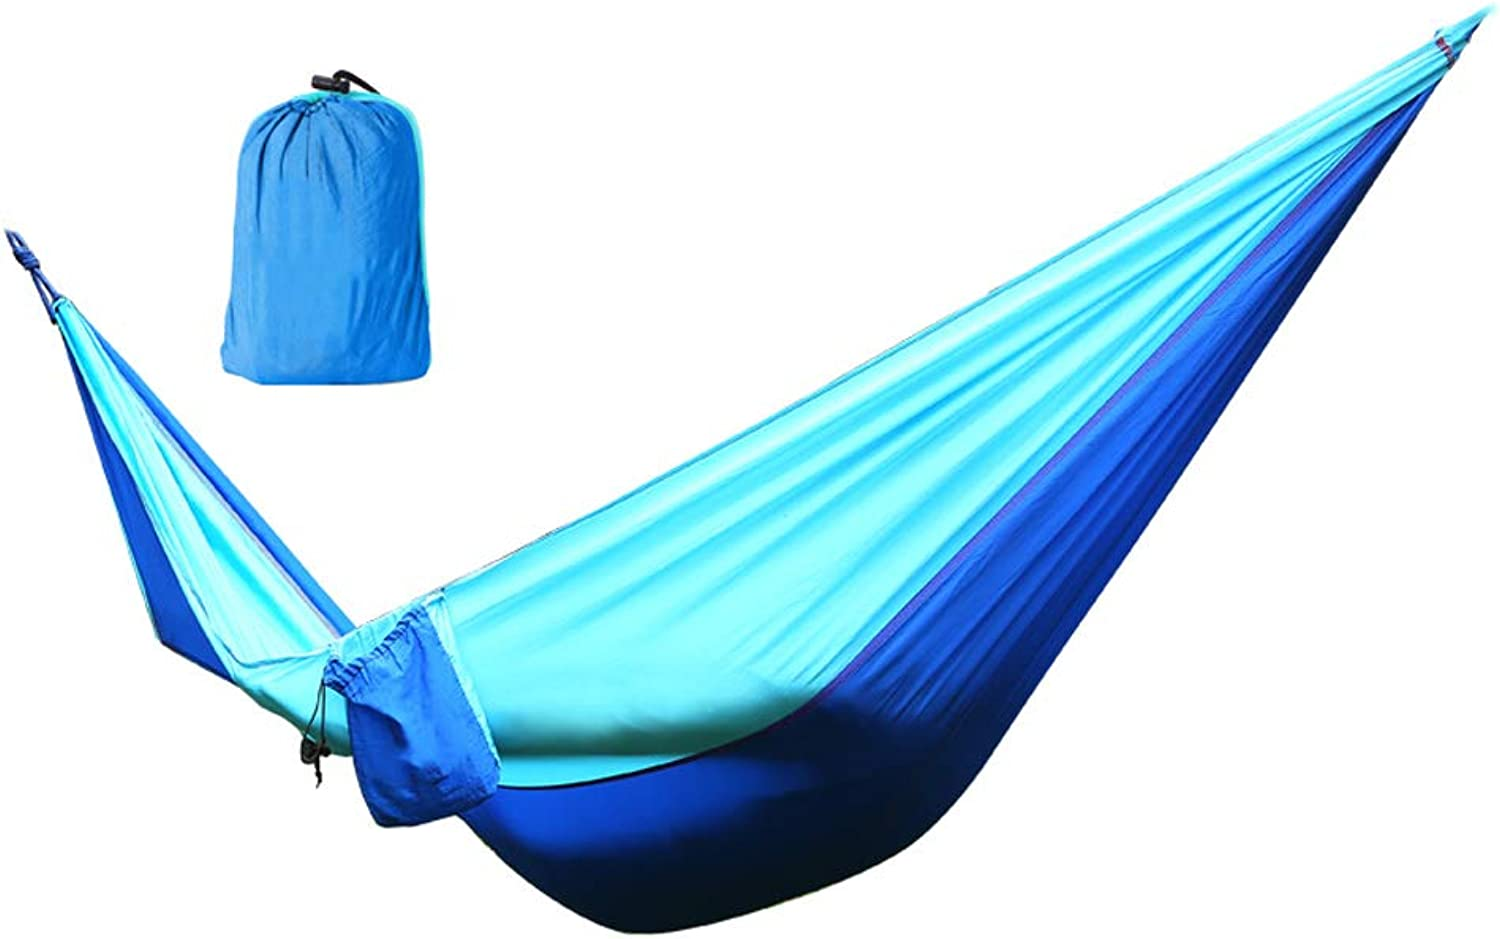 Outdoor Hammock Double Parachute Cloth Indoor Dorm Room Bedroom Swing Mountaineering Leisure Lifts (color   bluee)